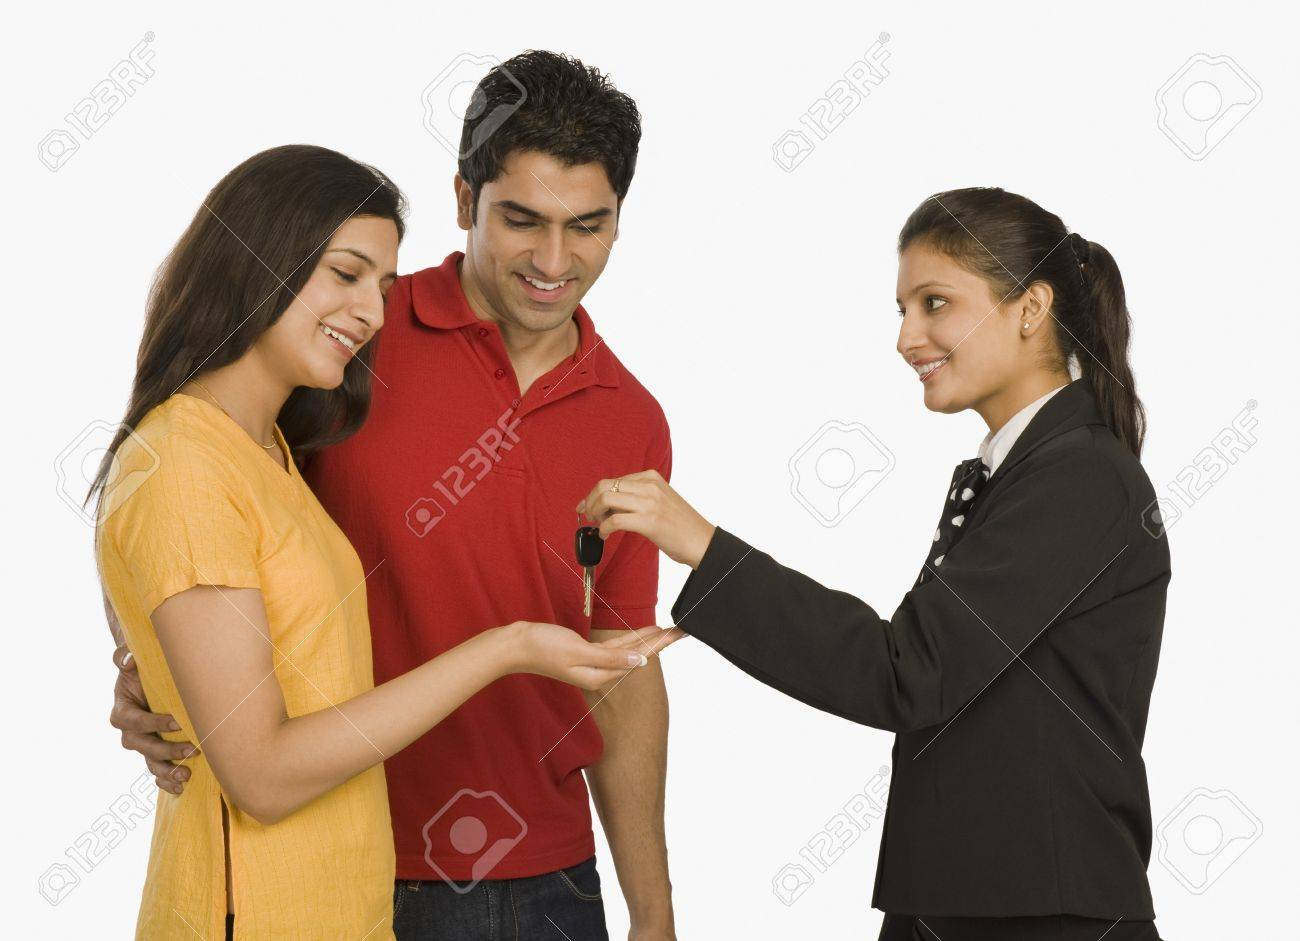 Businesswomen giving a car key to a woman Stock Photo - 10124557